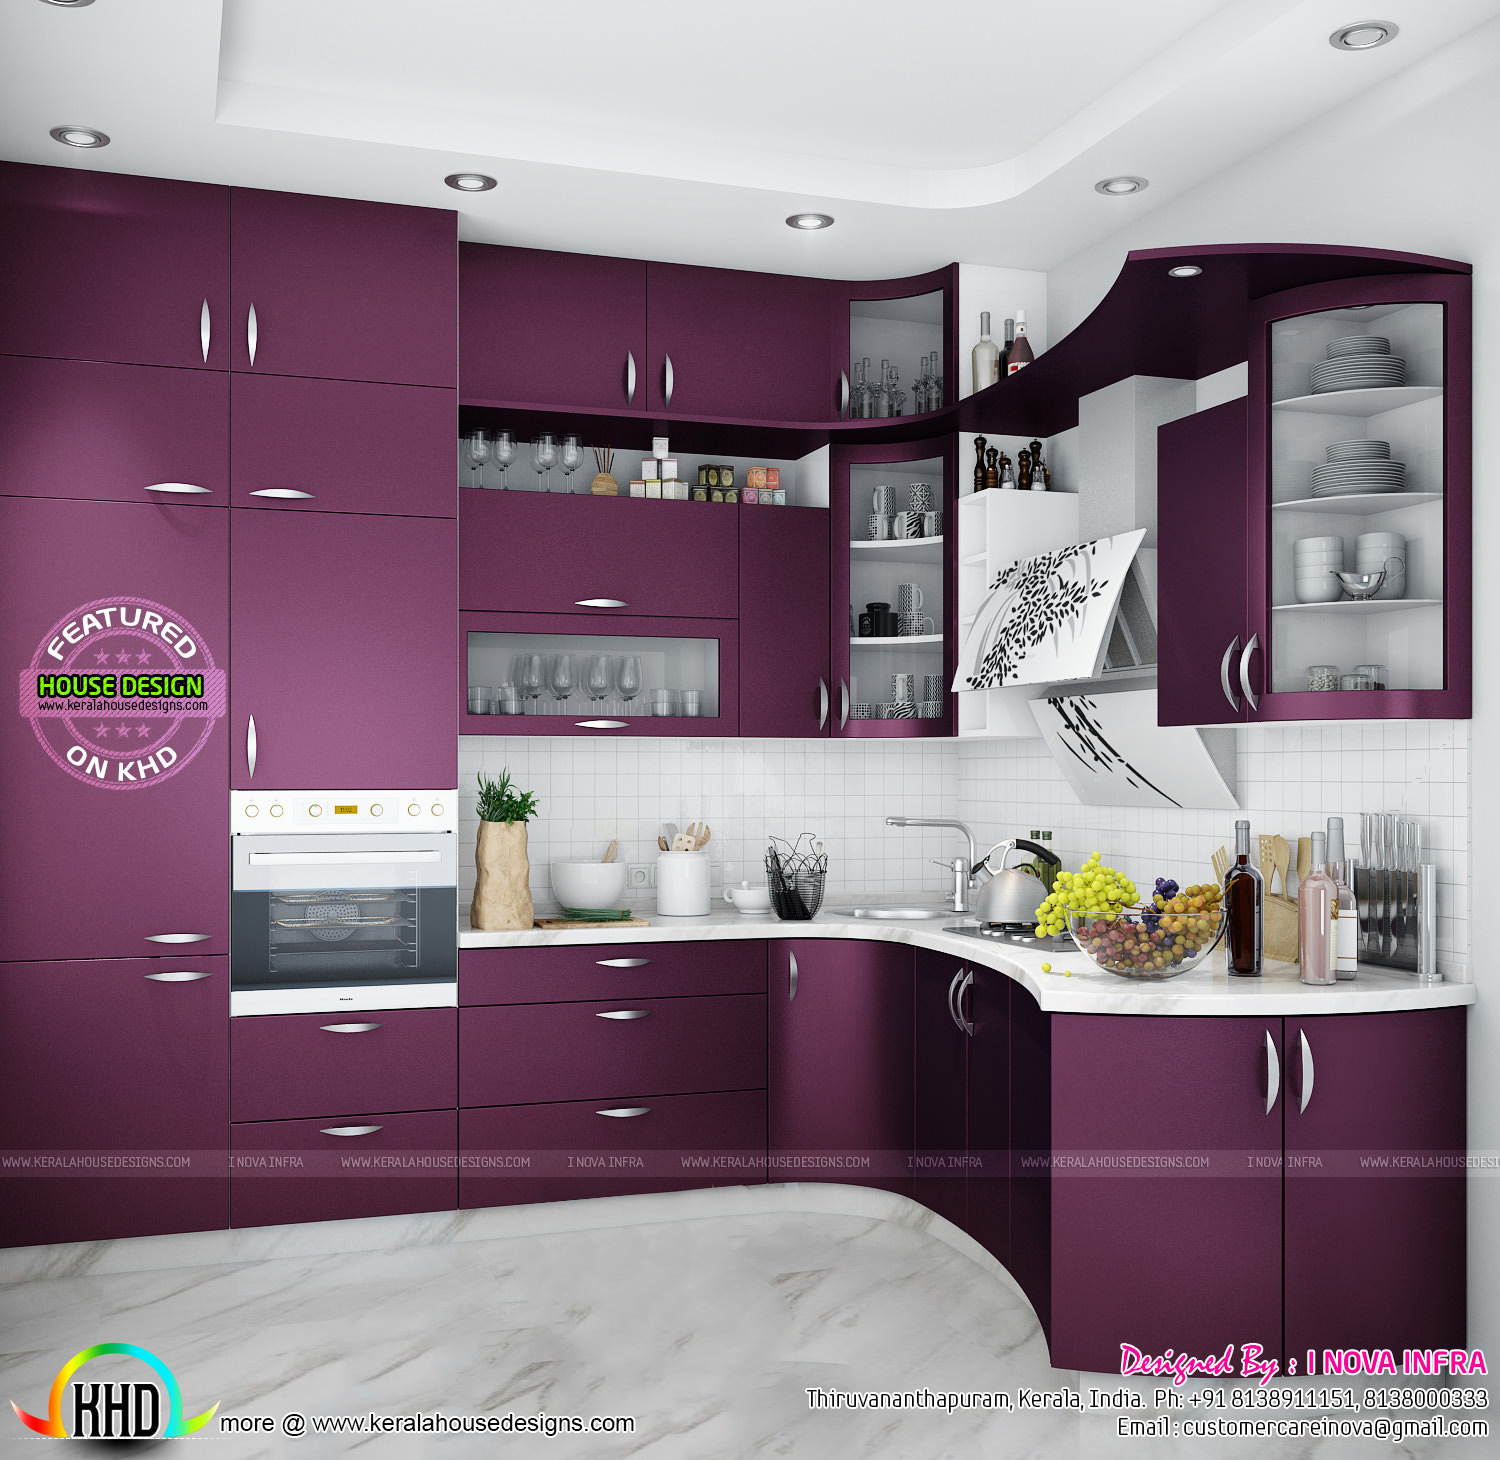 modular kitchen kerala kerala home design and floor plans. Black Bedroom Furniture Sets. Home Design Ideas